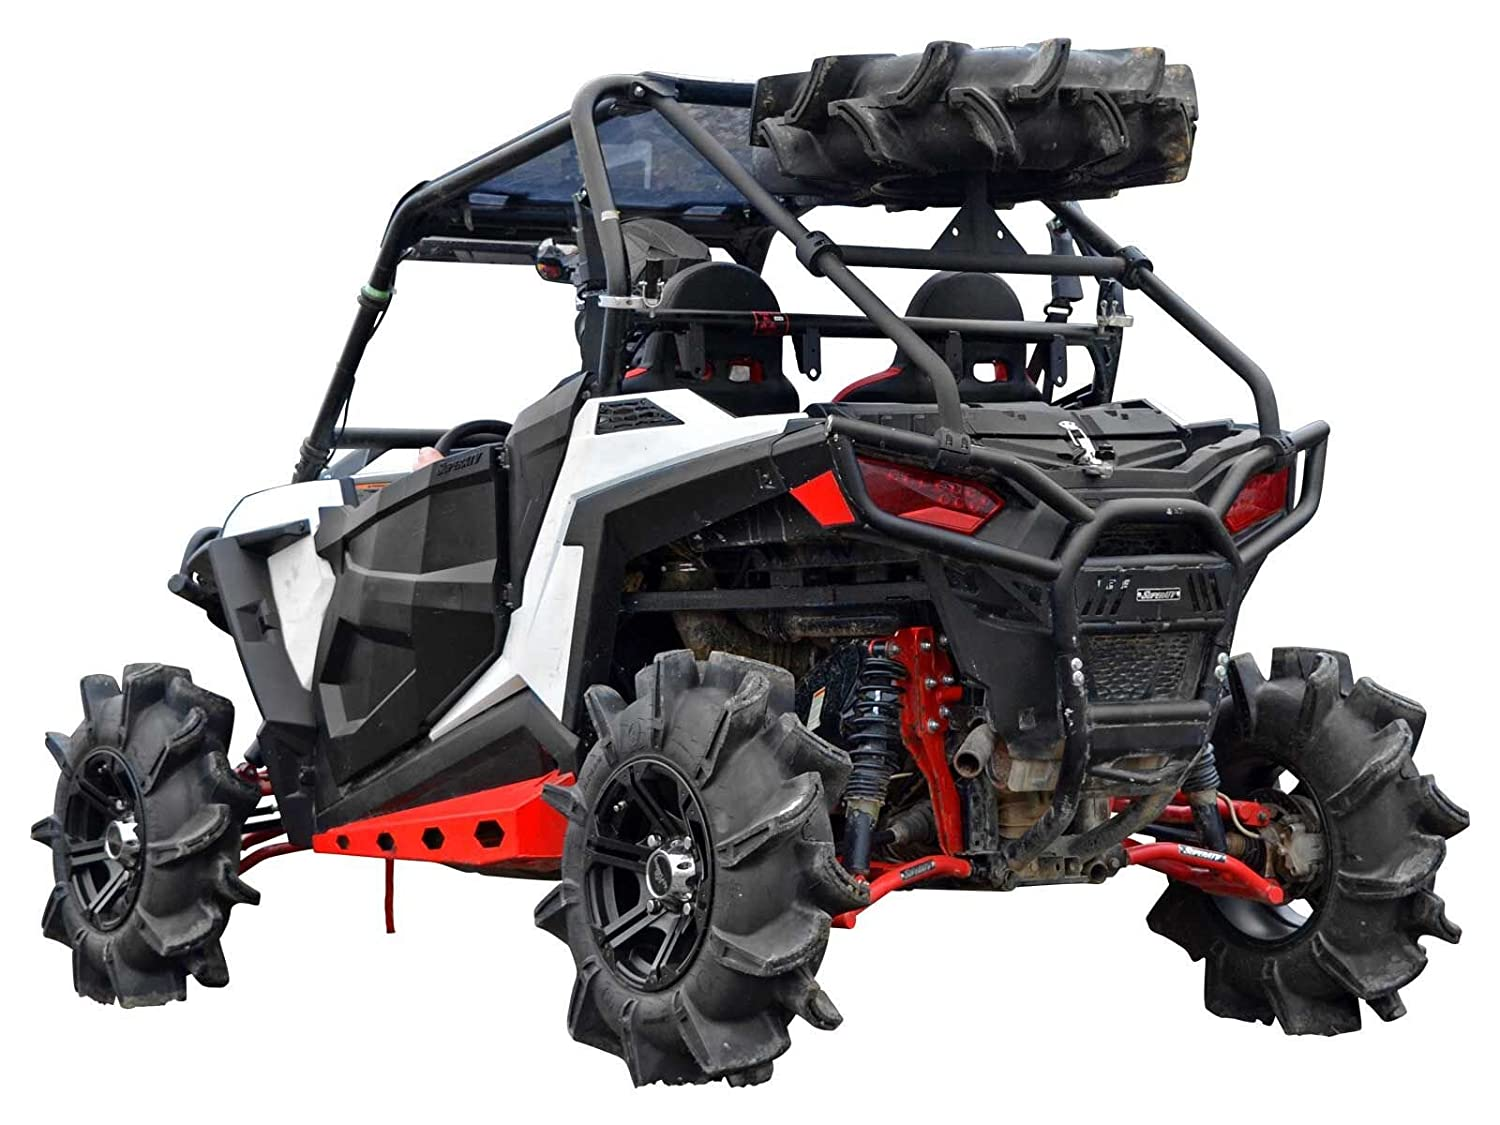 SuperATV Polaris RZR 900/900 S/900 XC Heavy Duty Spare Tire Carrier - Wrinkle Black - Easy, Bolt-On Installation! SuperATV.com